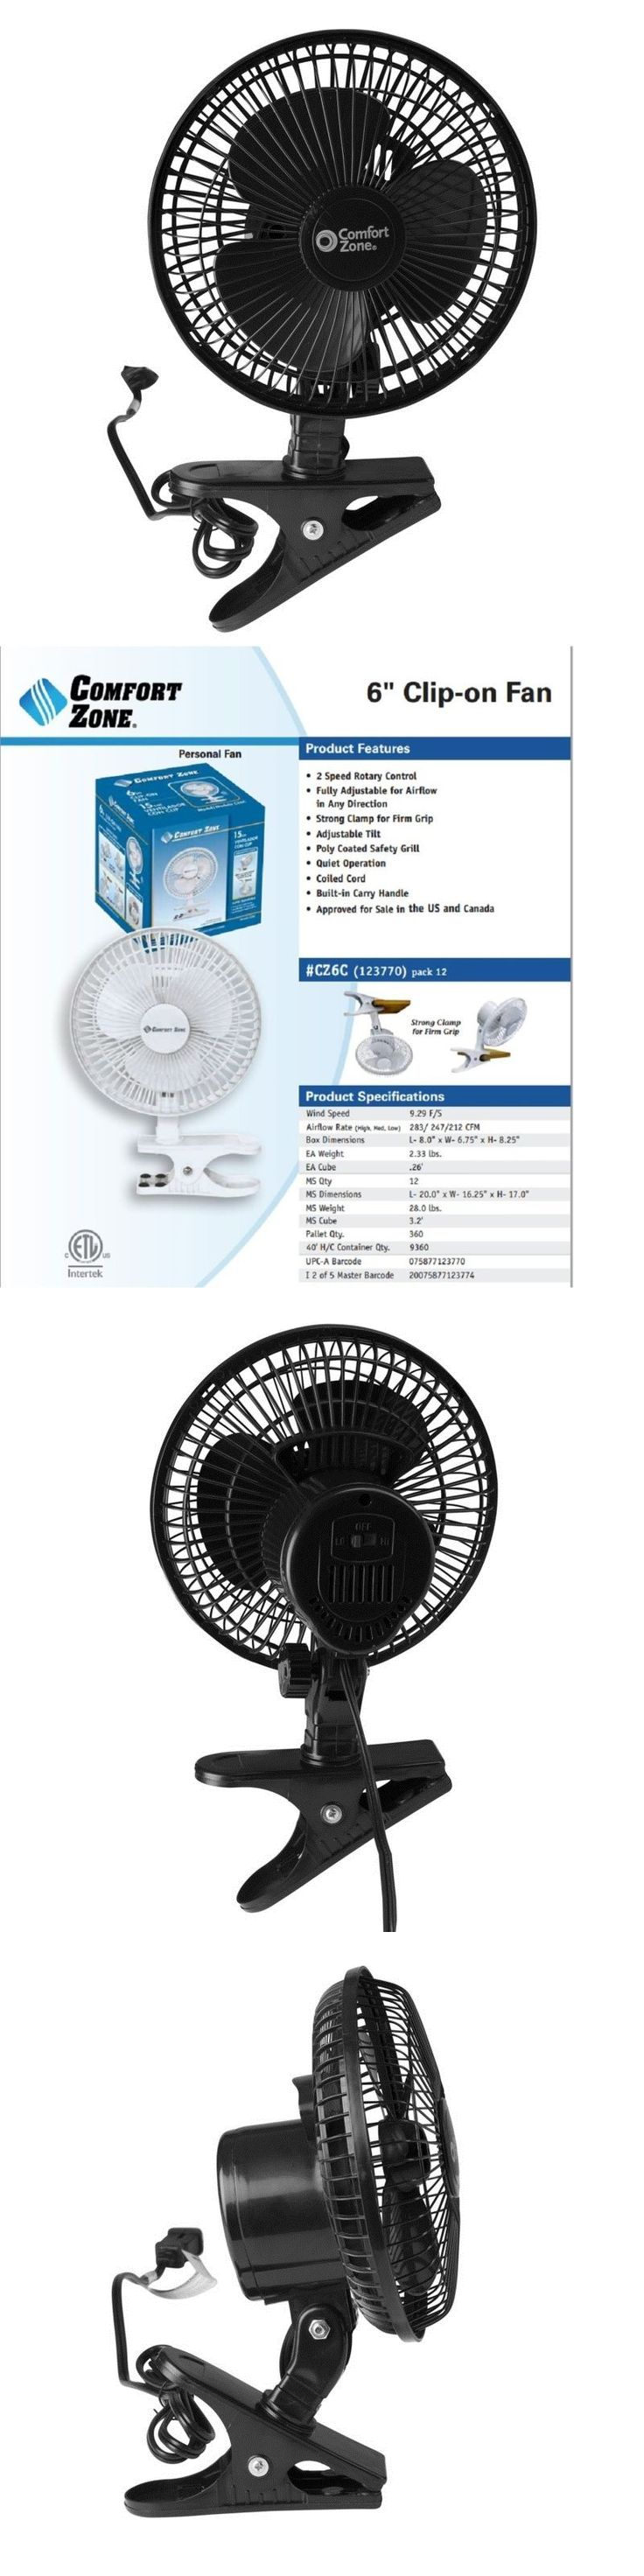 Portable Fans 20612: Clip On Mini Electric Cooling Fan Portable Oscillating Small Table Desk 6 Inch -> BUY IT NOW ONLY: $30.02 on eBay!